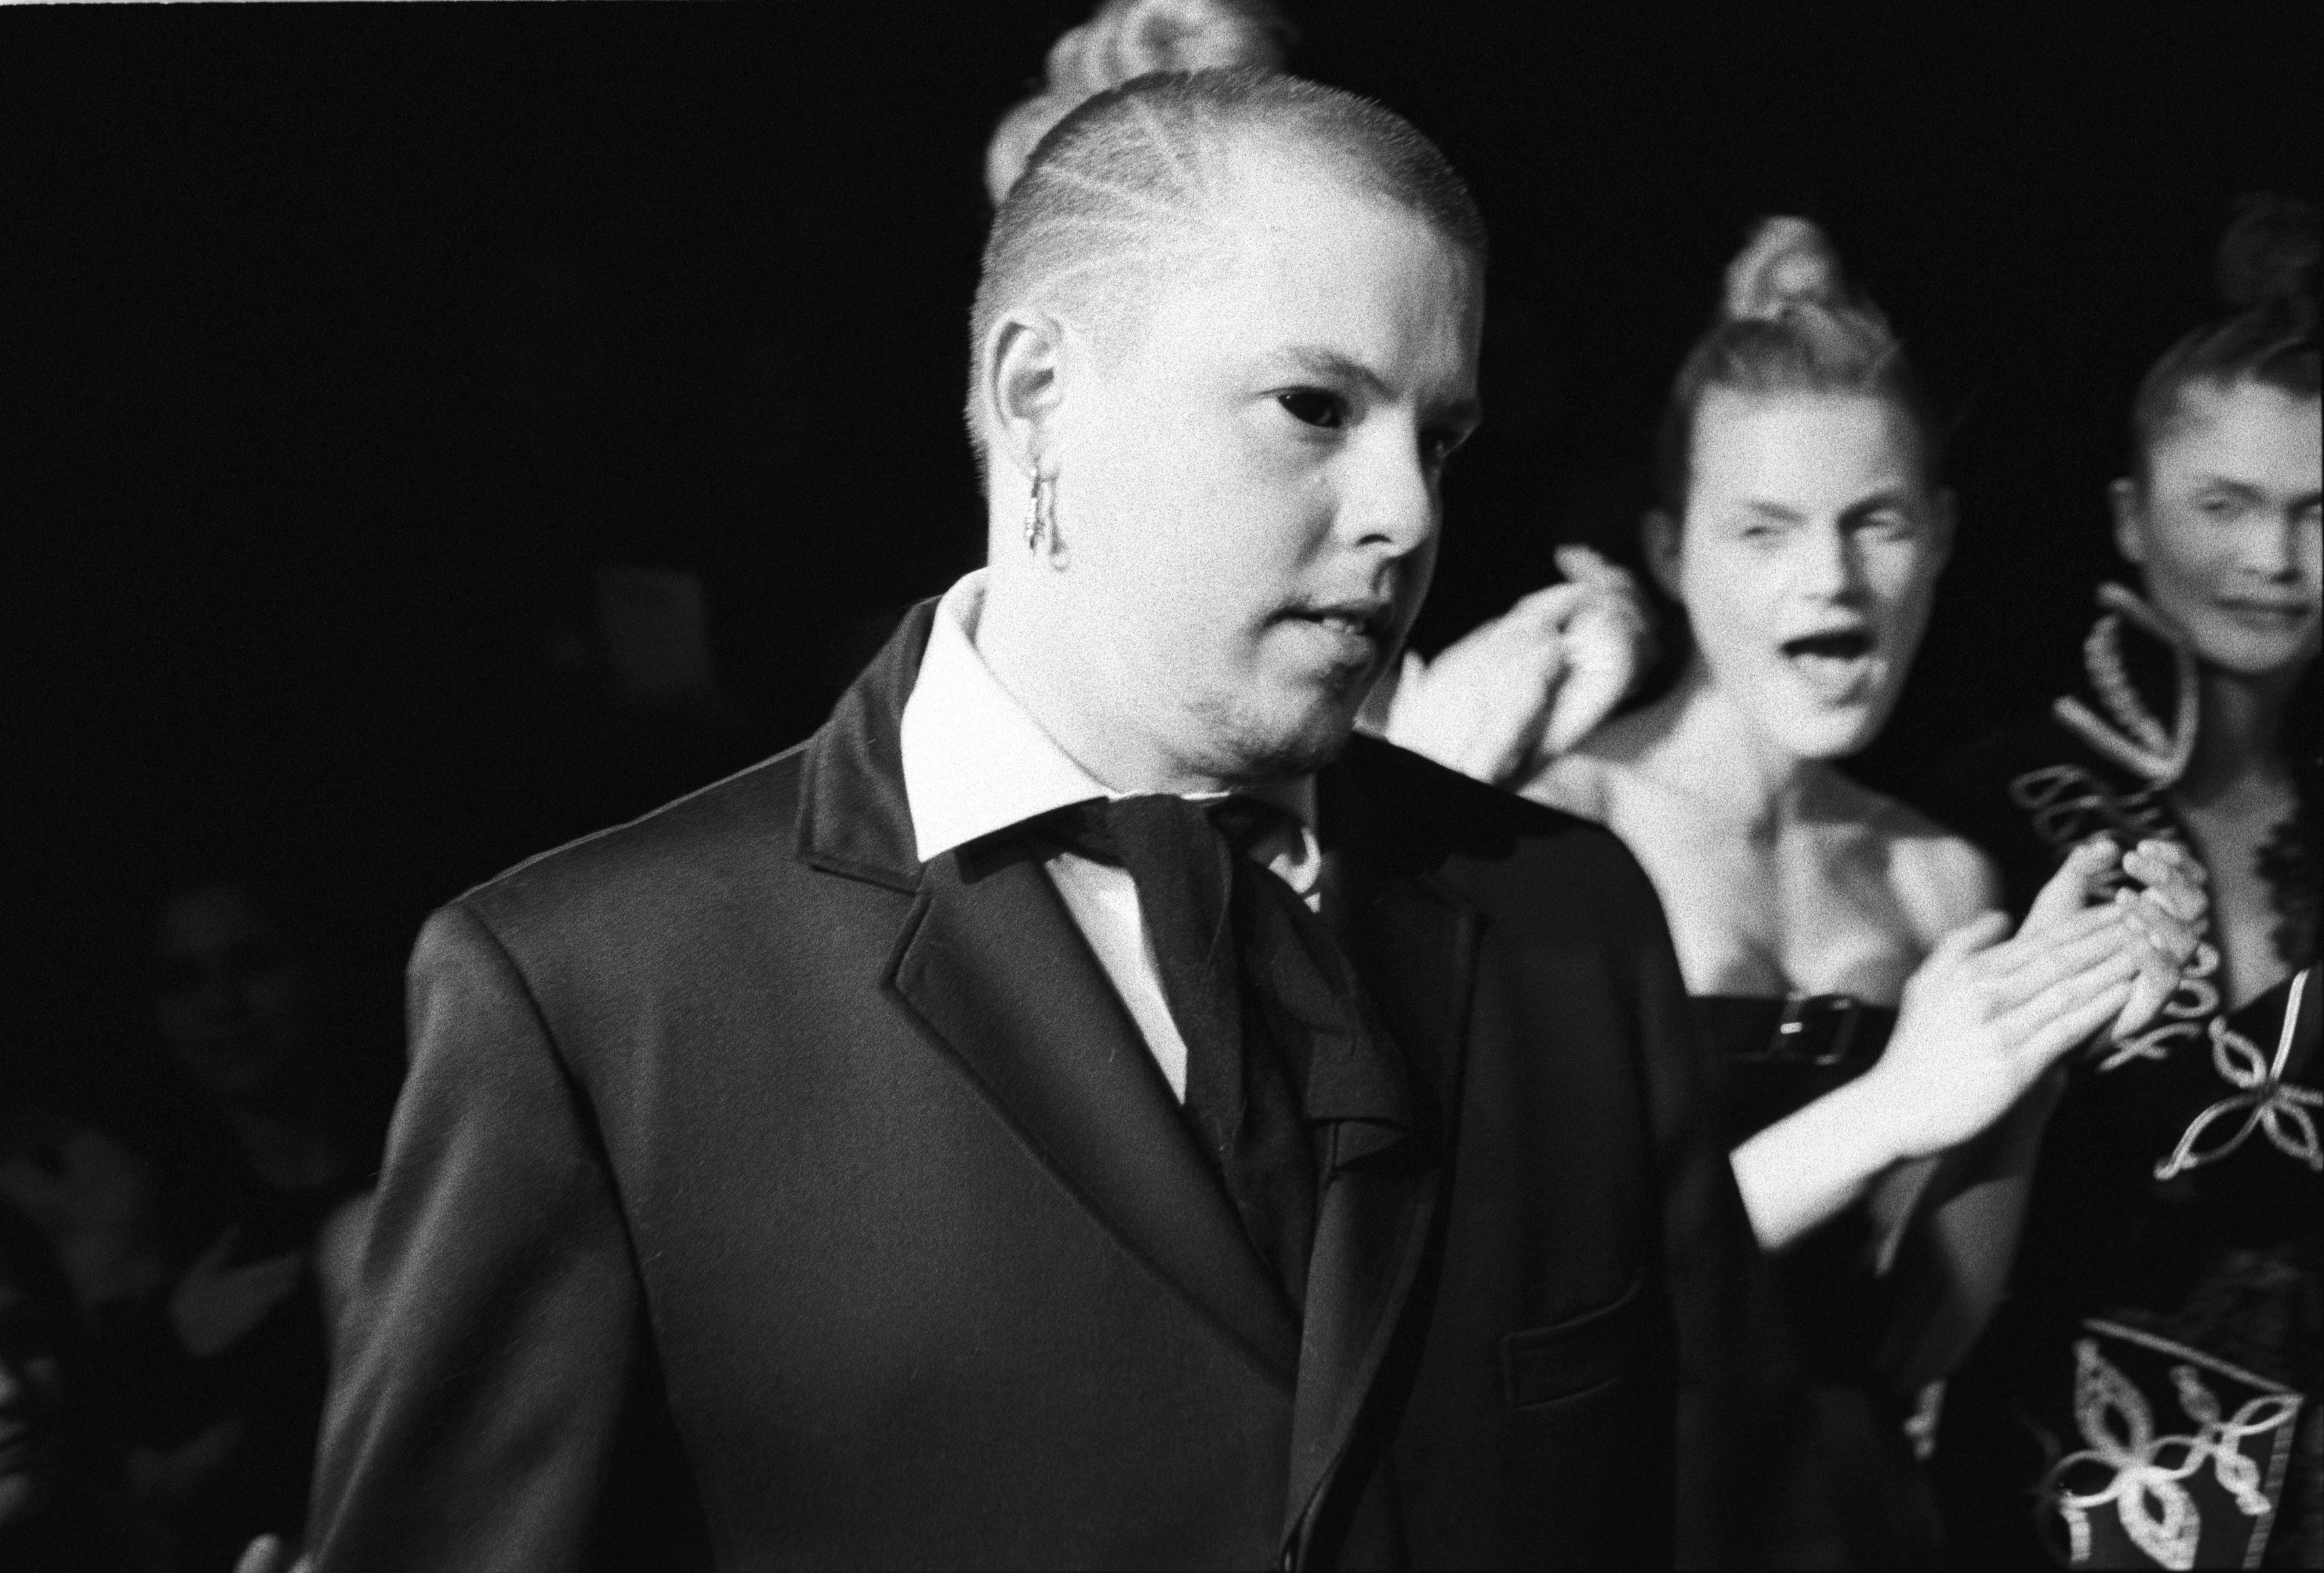 NEW YORK - MARCH 1996:  British fashion designer Alexander McQueen with unidentified models in the background at a show of hi